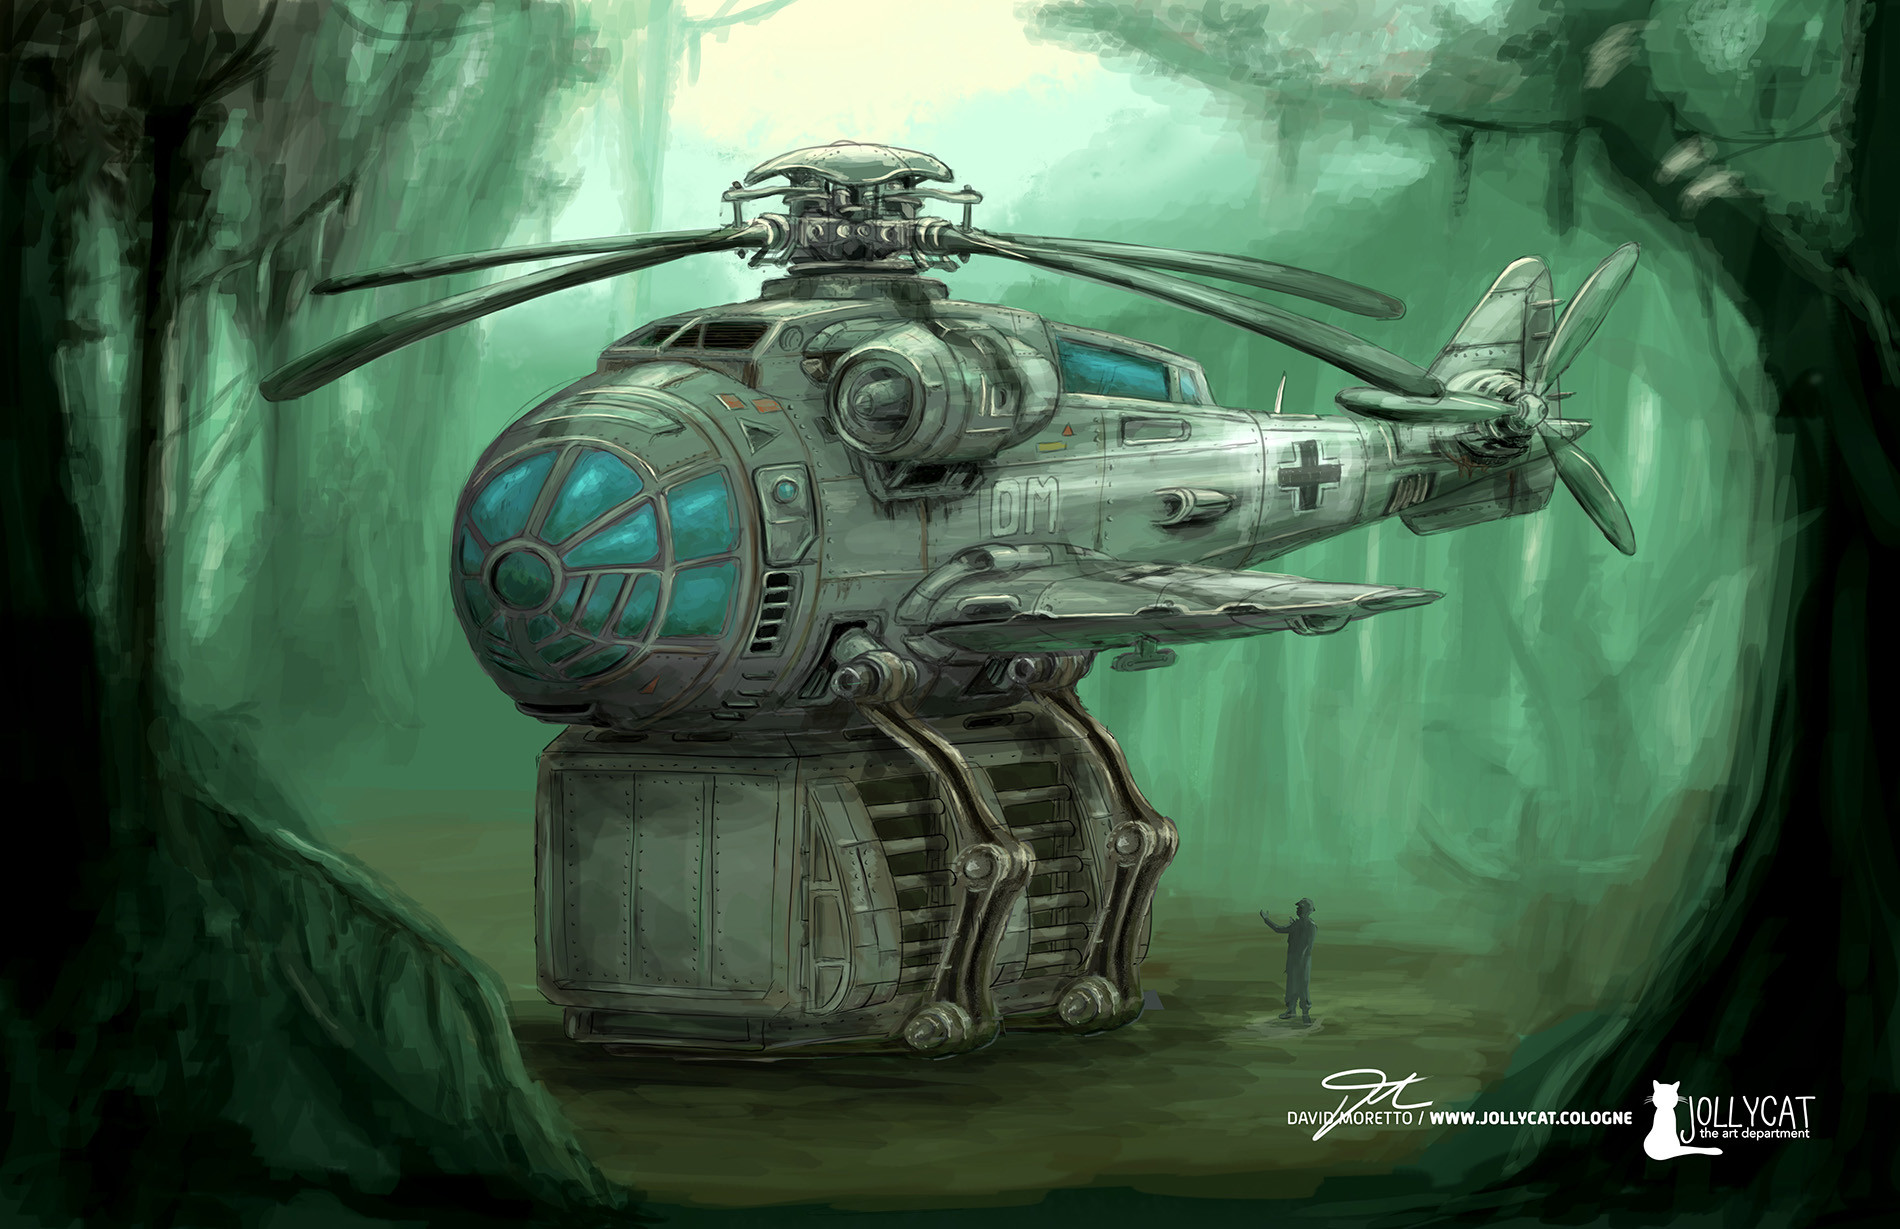 David moretto gottesgreifer conceptart 002c